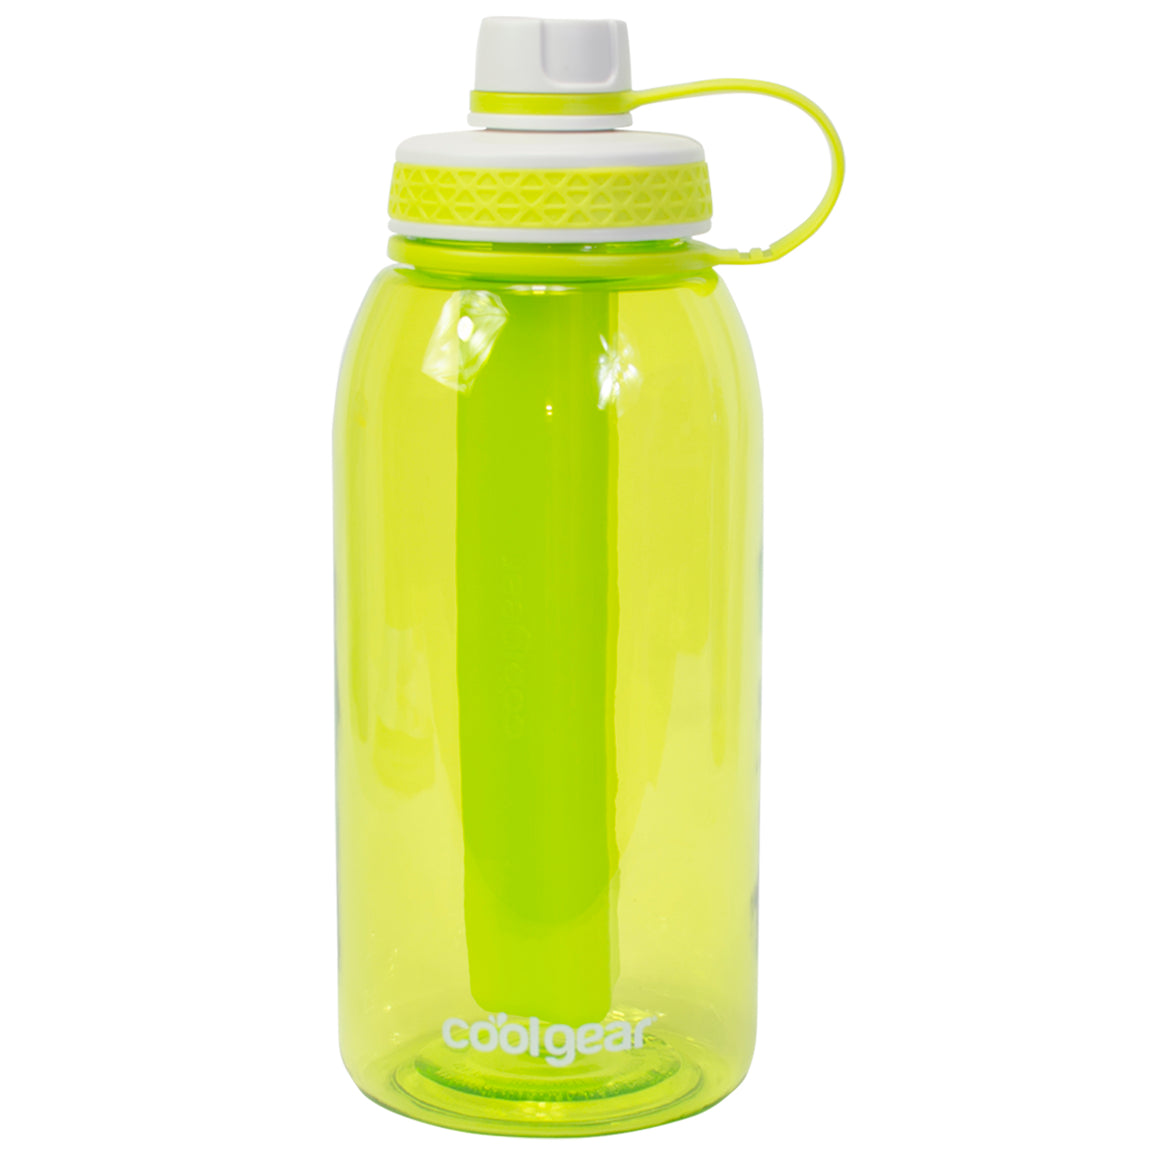 Aquamarine System 48 Oz Water Bottle at Cool Gear Water Bottles